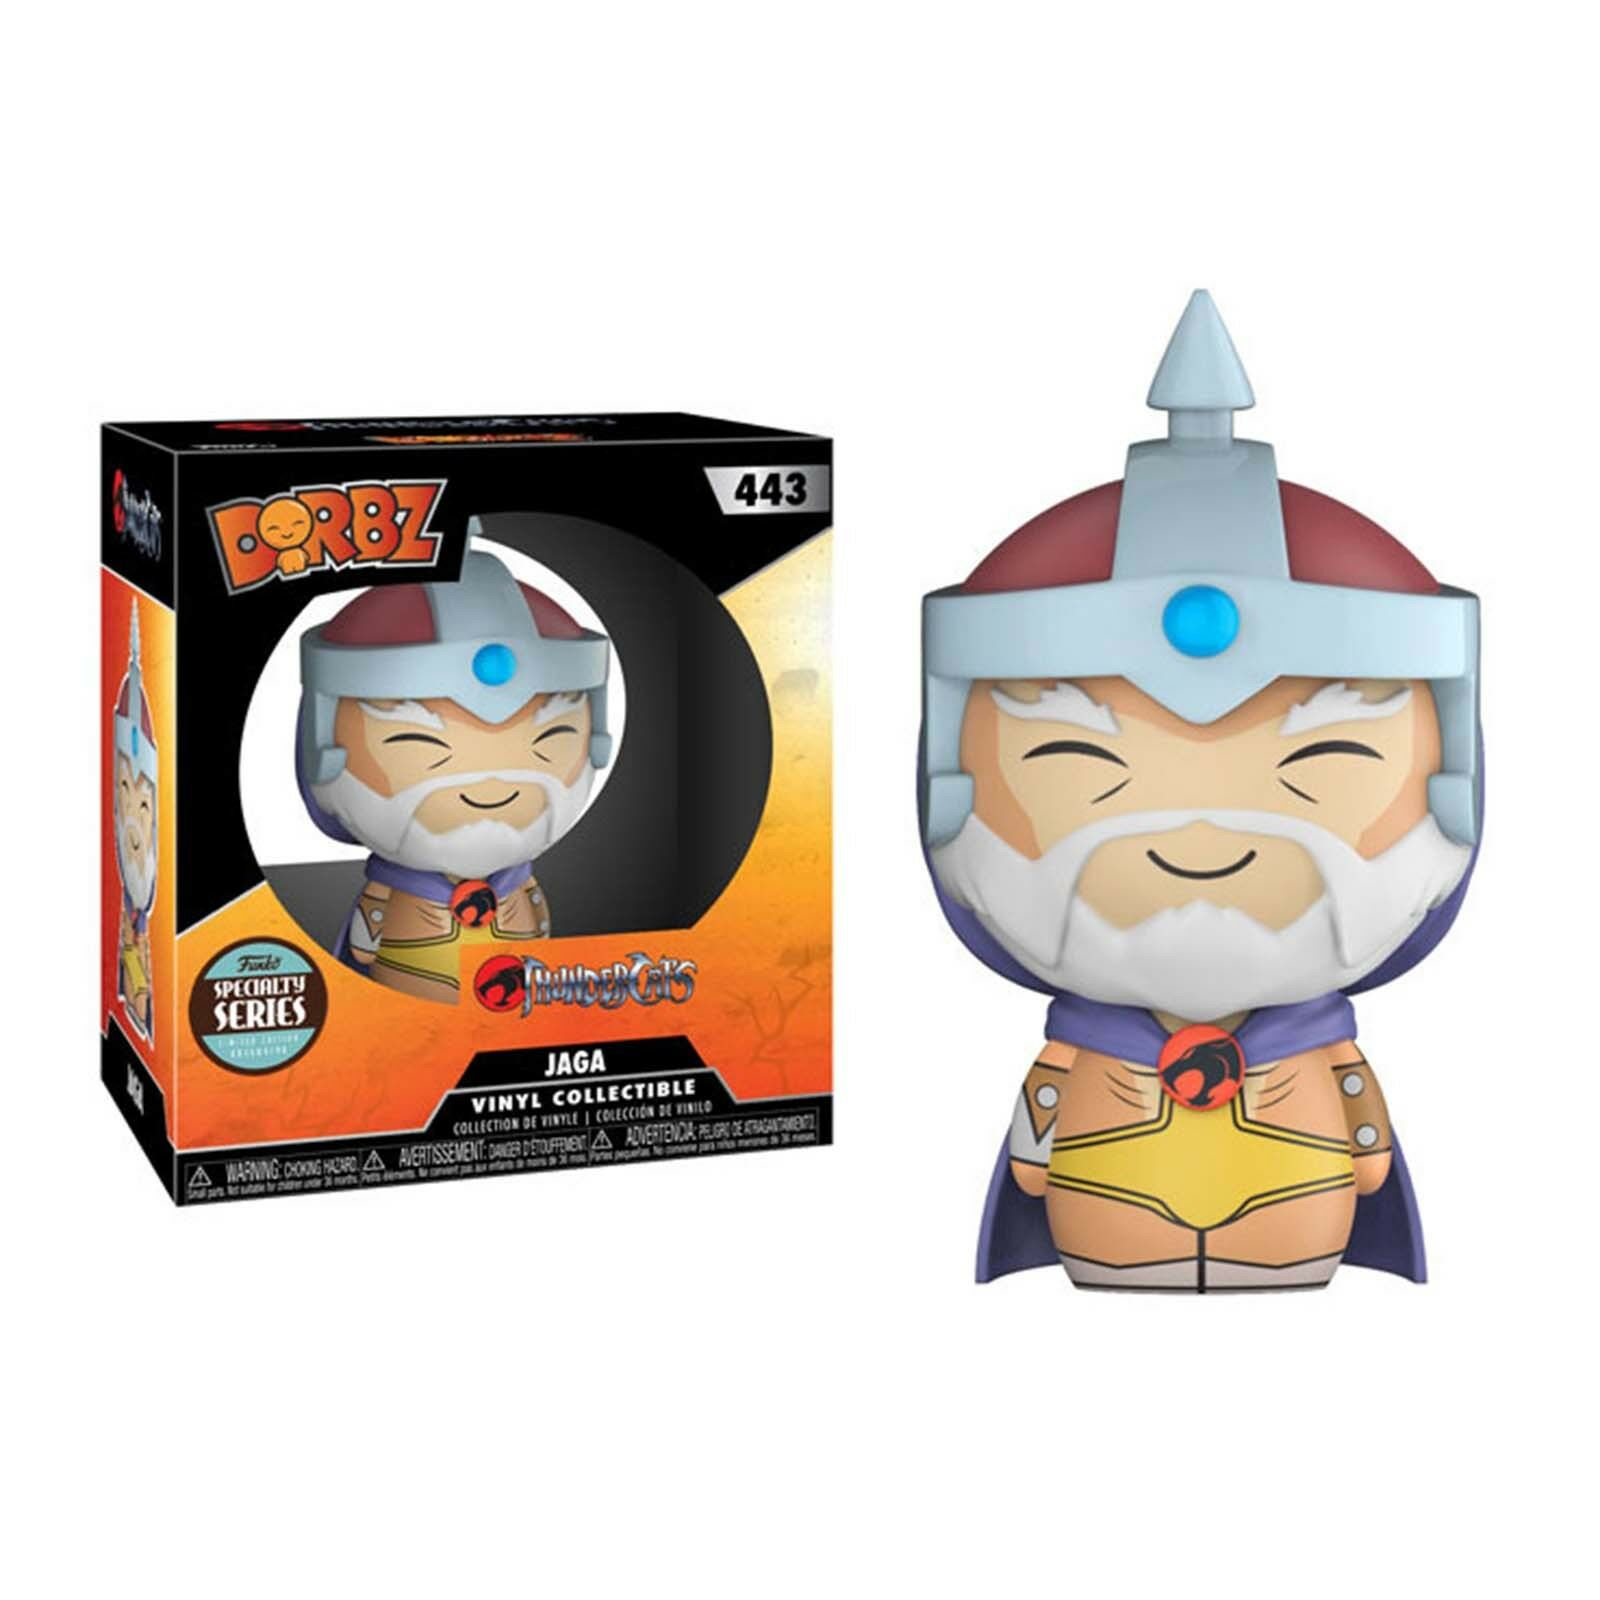 Funko Thundercats Specialty Dorbz Jaga Vinyl Figure NEW Toys and Collectible